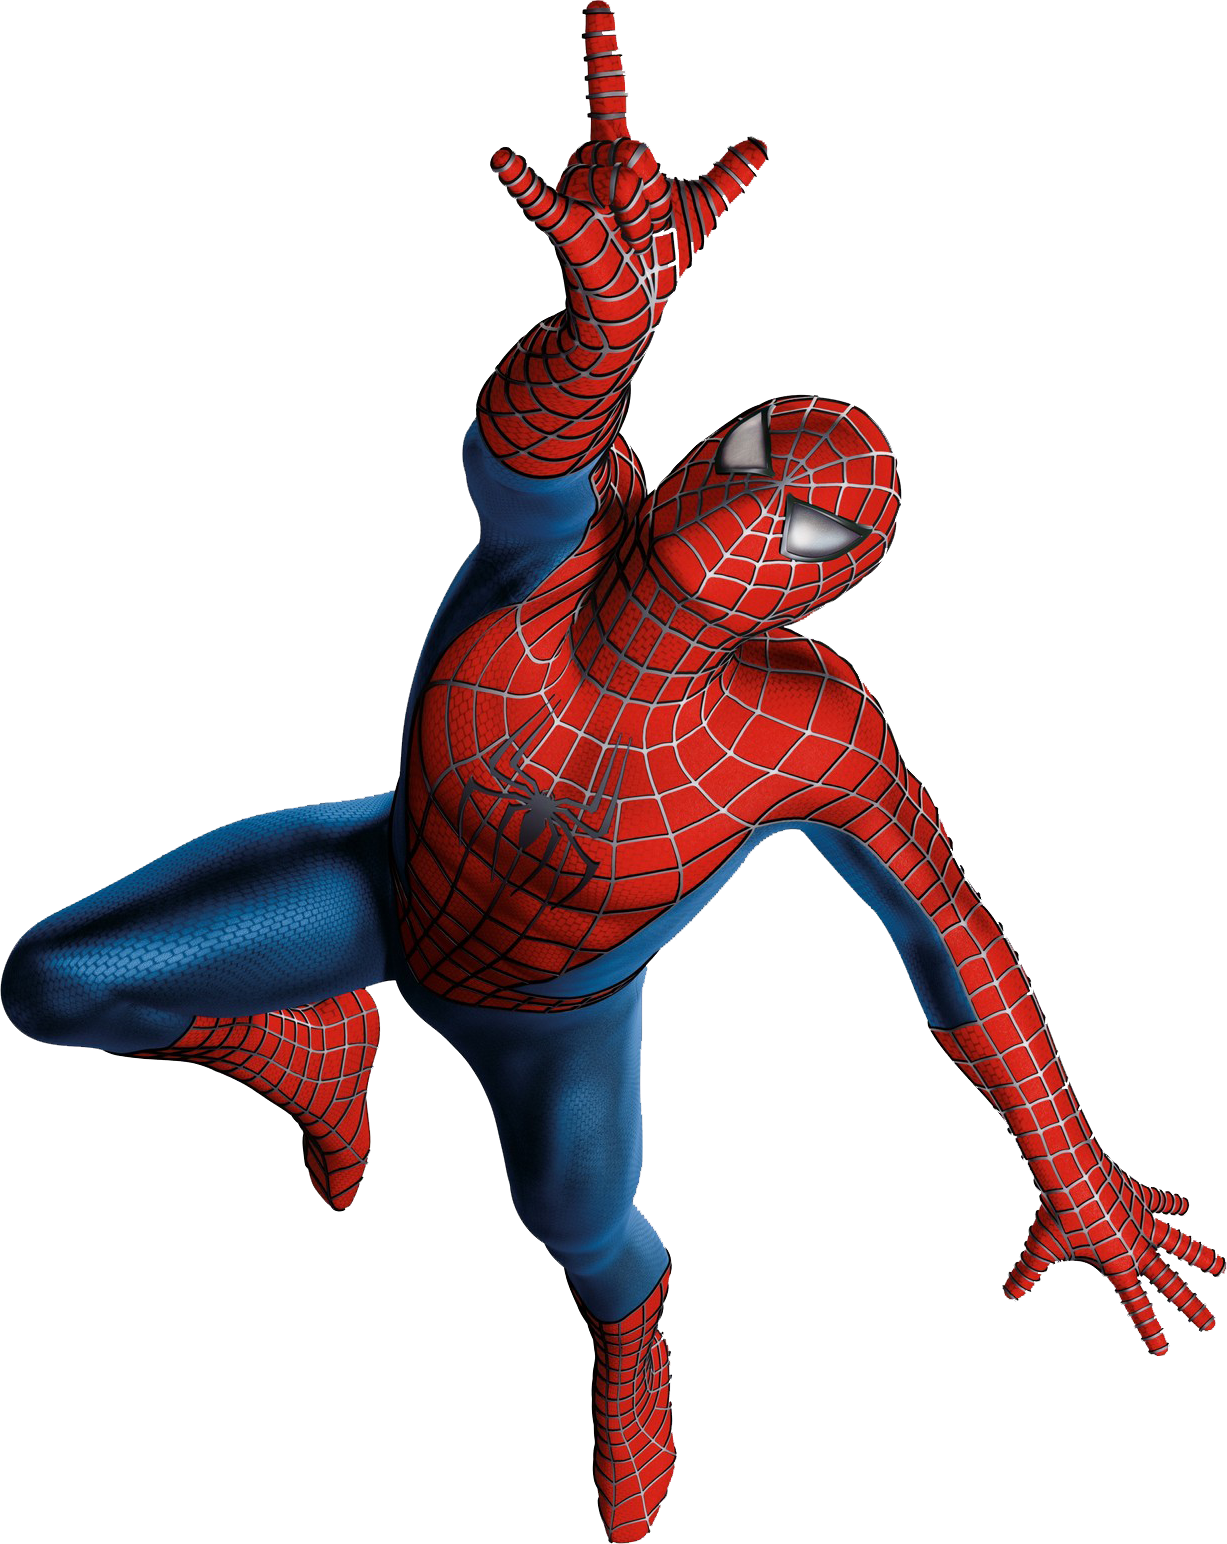 Spiderman 3 png. Spider man images free